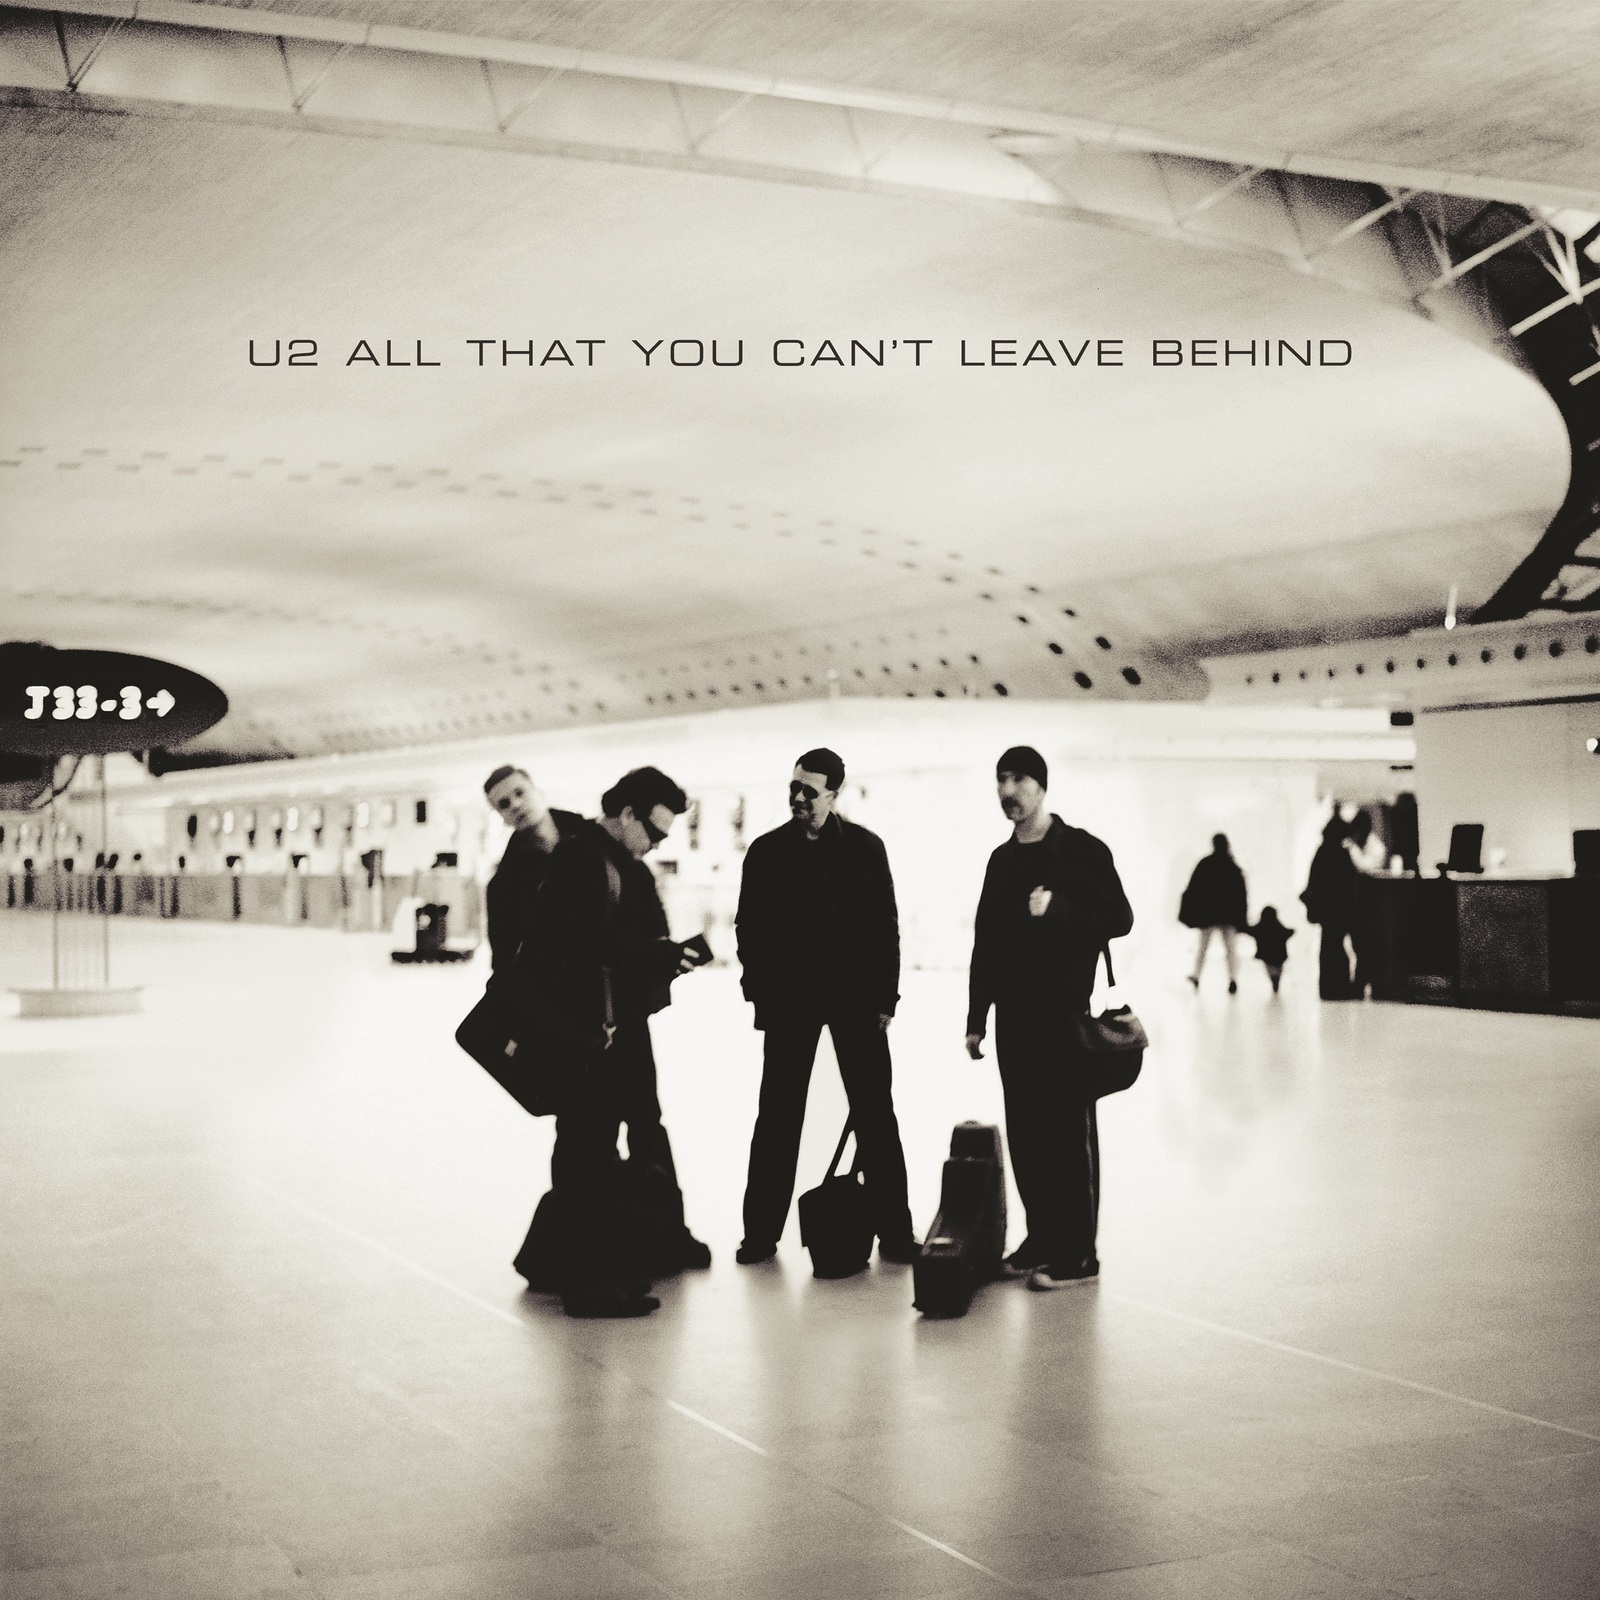 All That You Can't Leave Behind (LP) by U2 image